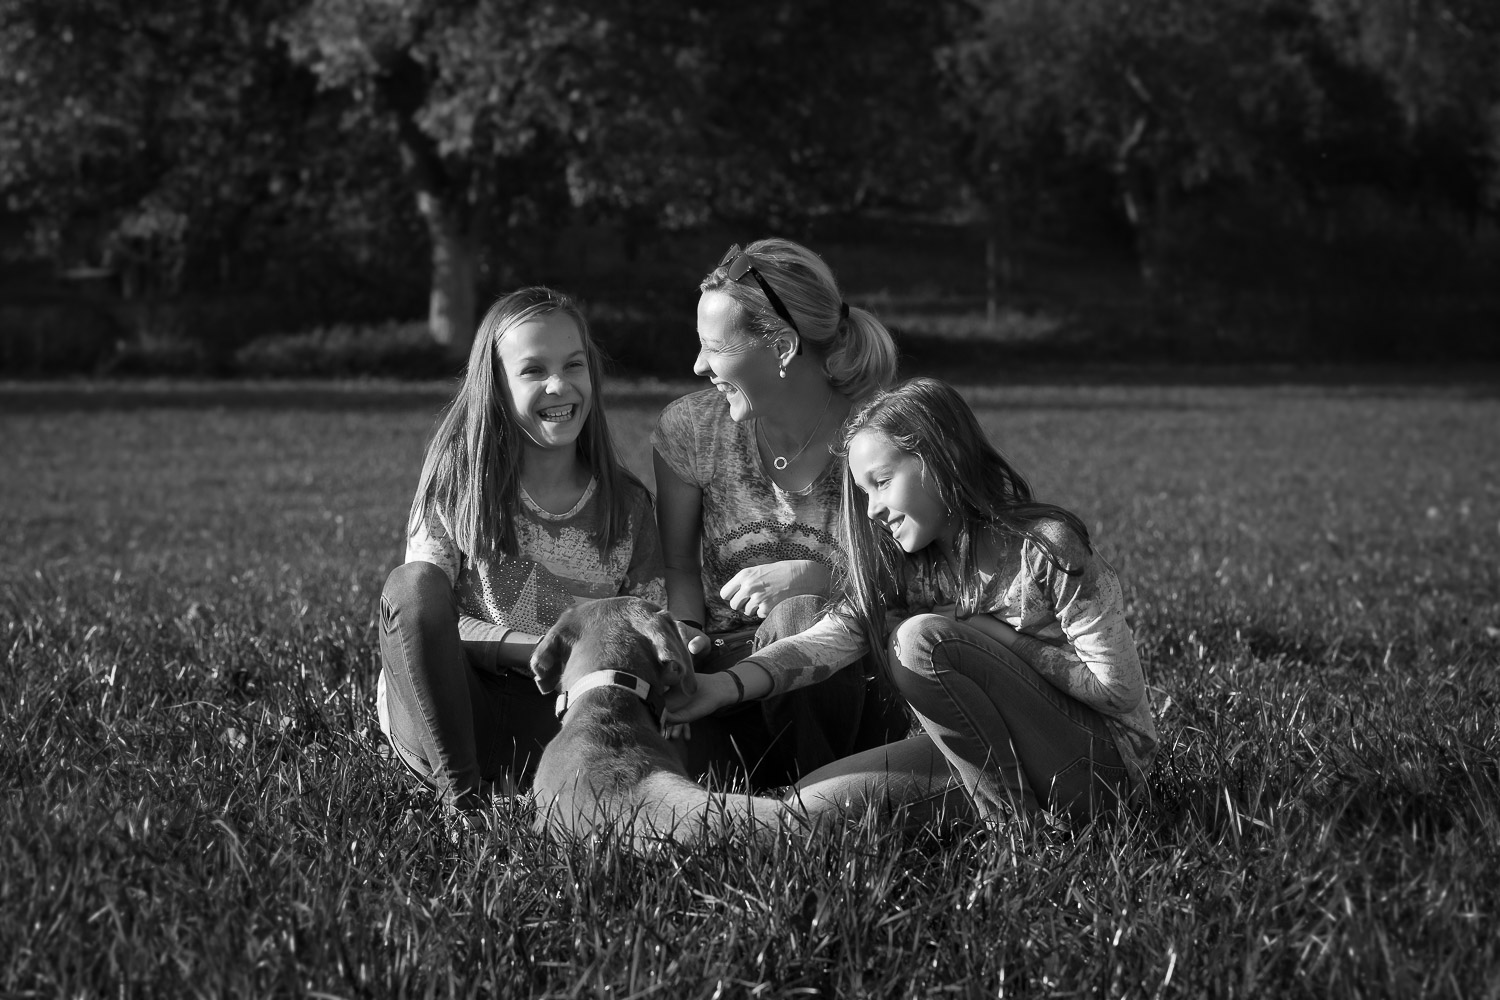 Mother an two Girls sitting with dog in the grass, black and white, portrait